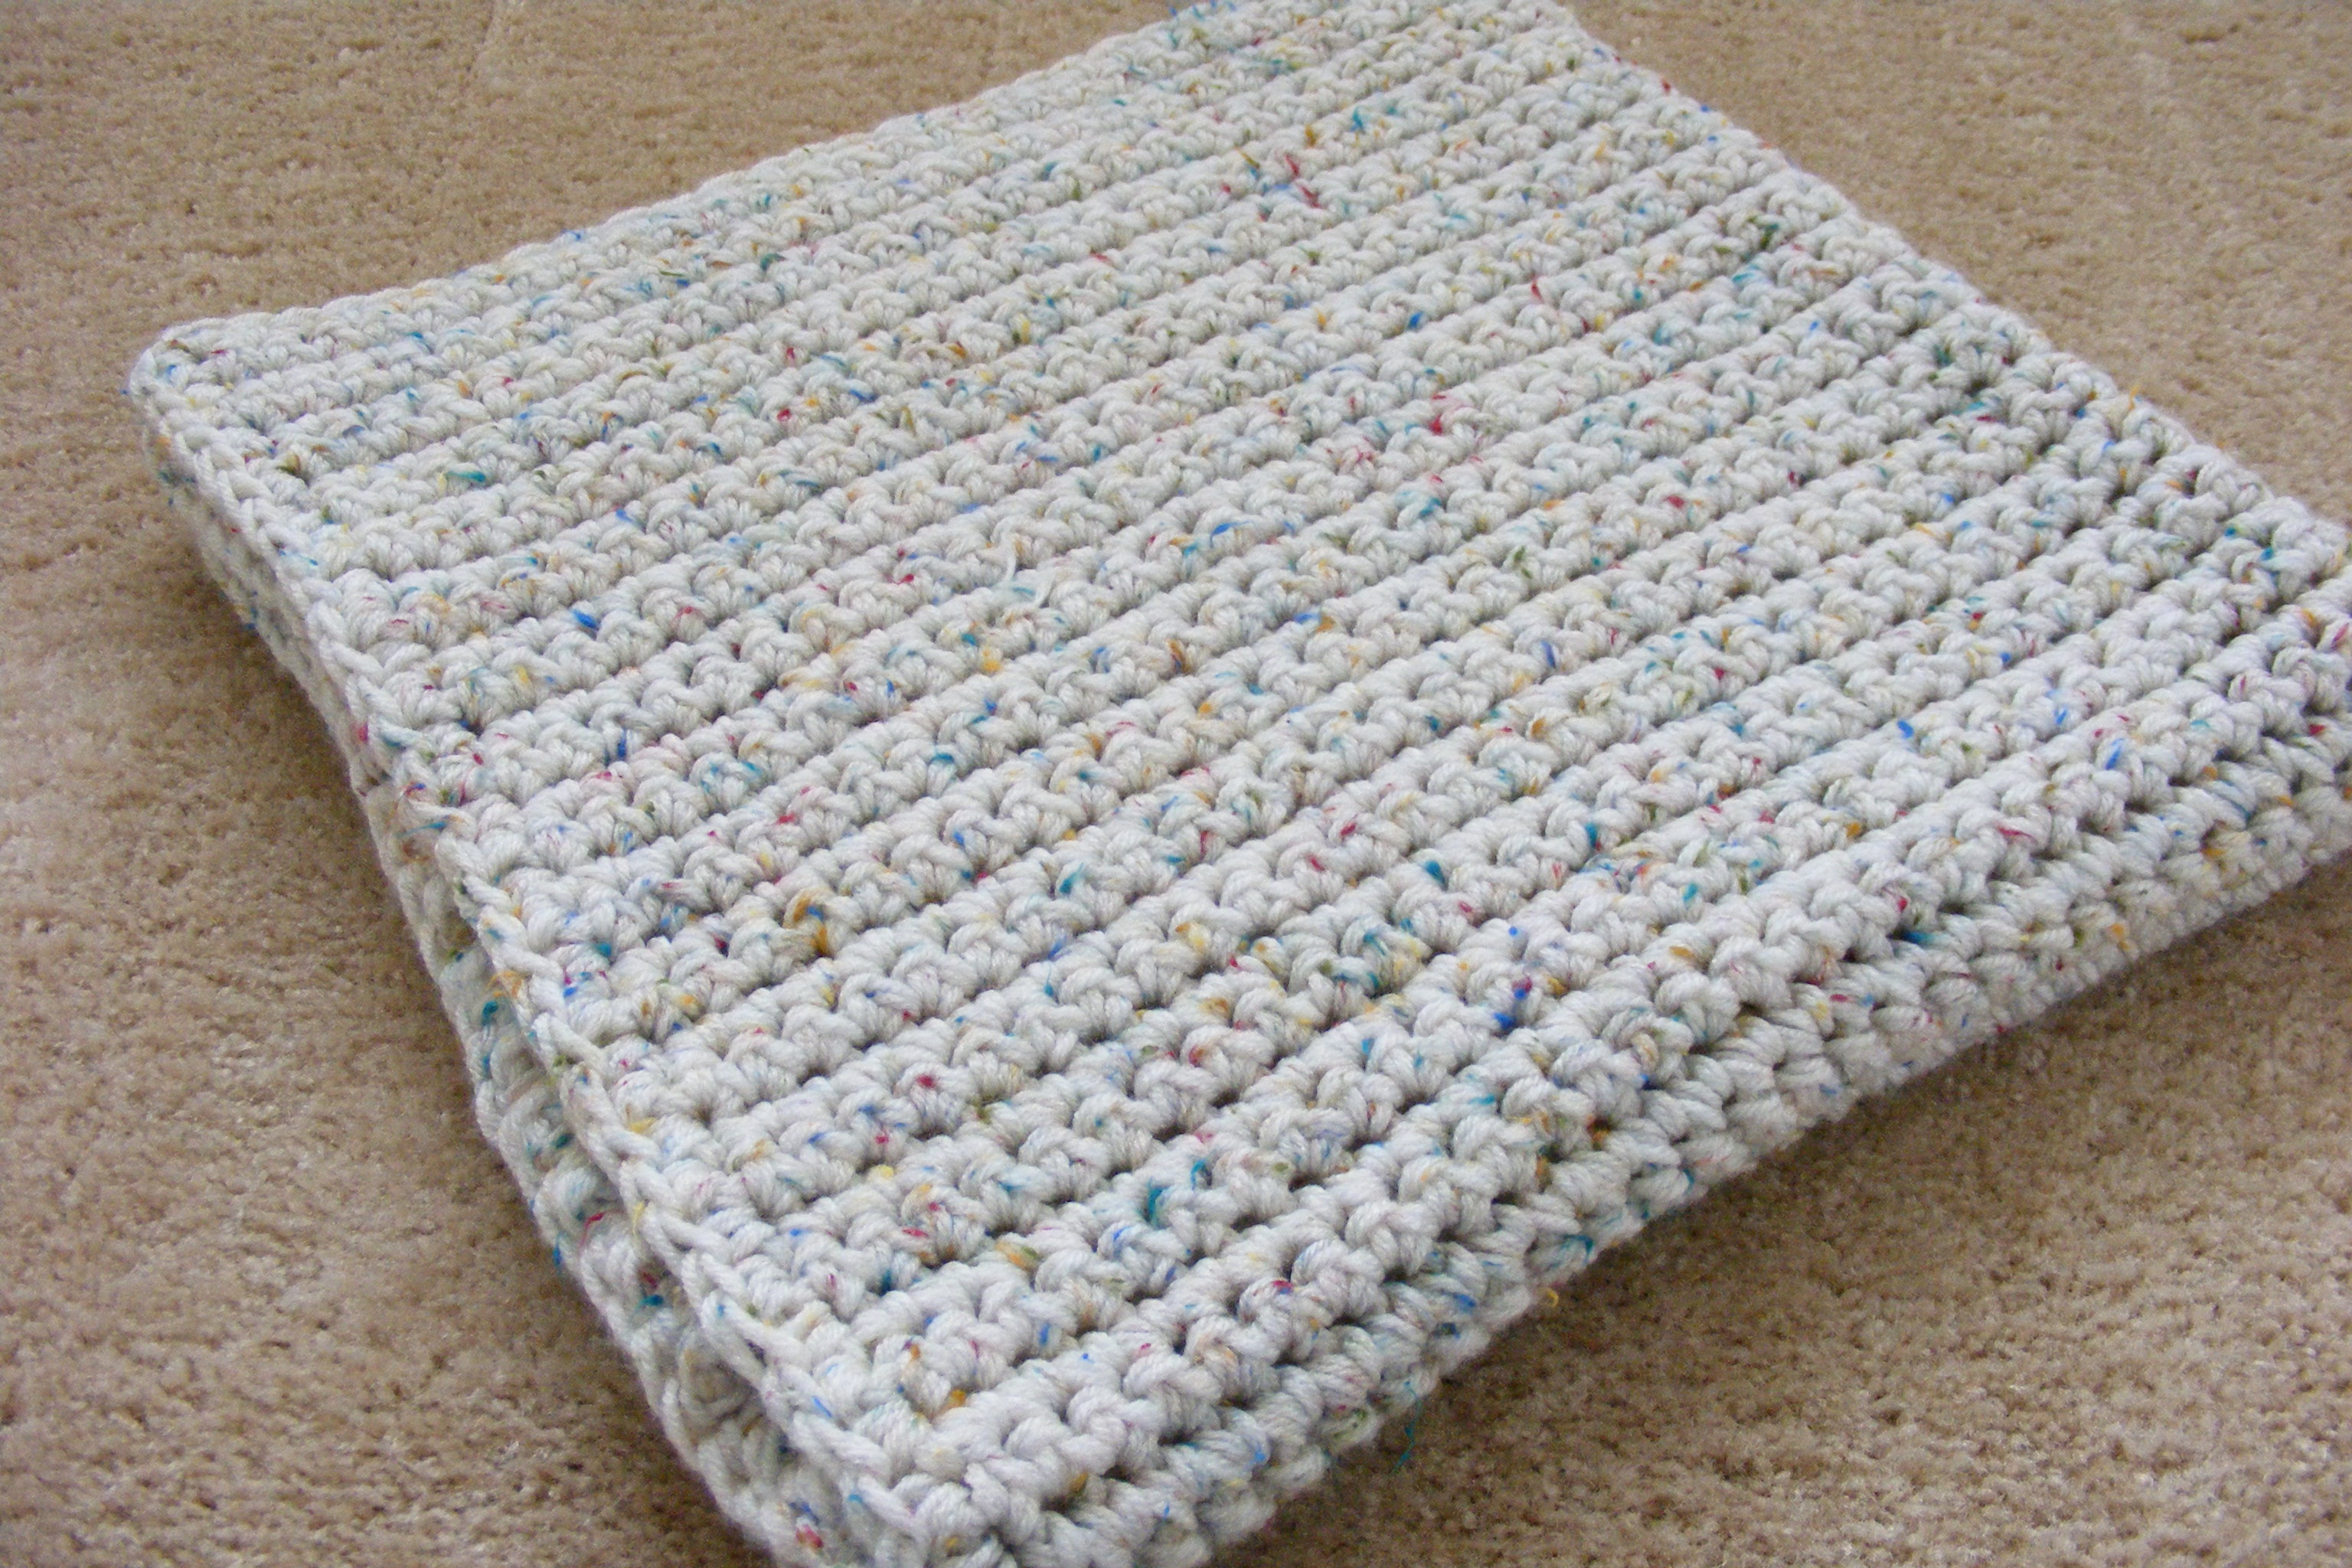 Crochet Baby Blanket : Single Crochet Baby Blanket GretchKals Yarny Adventures